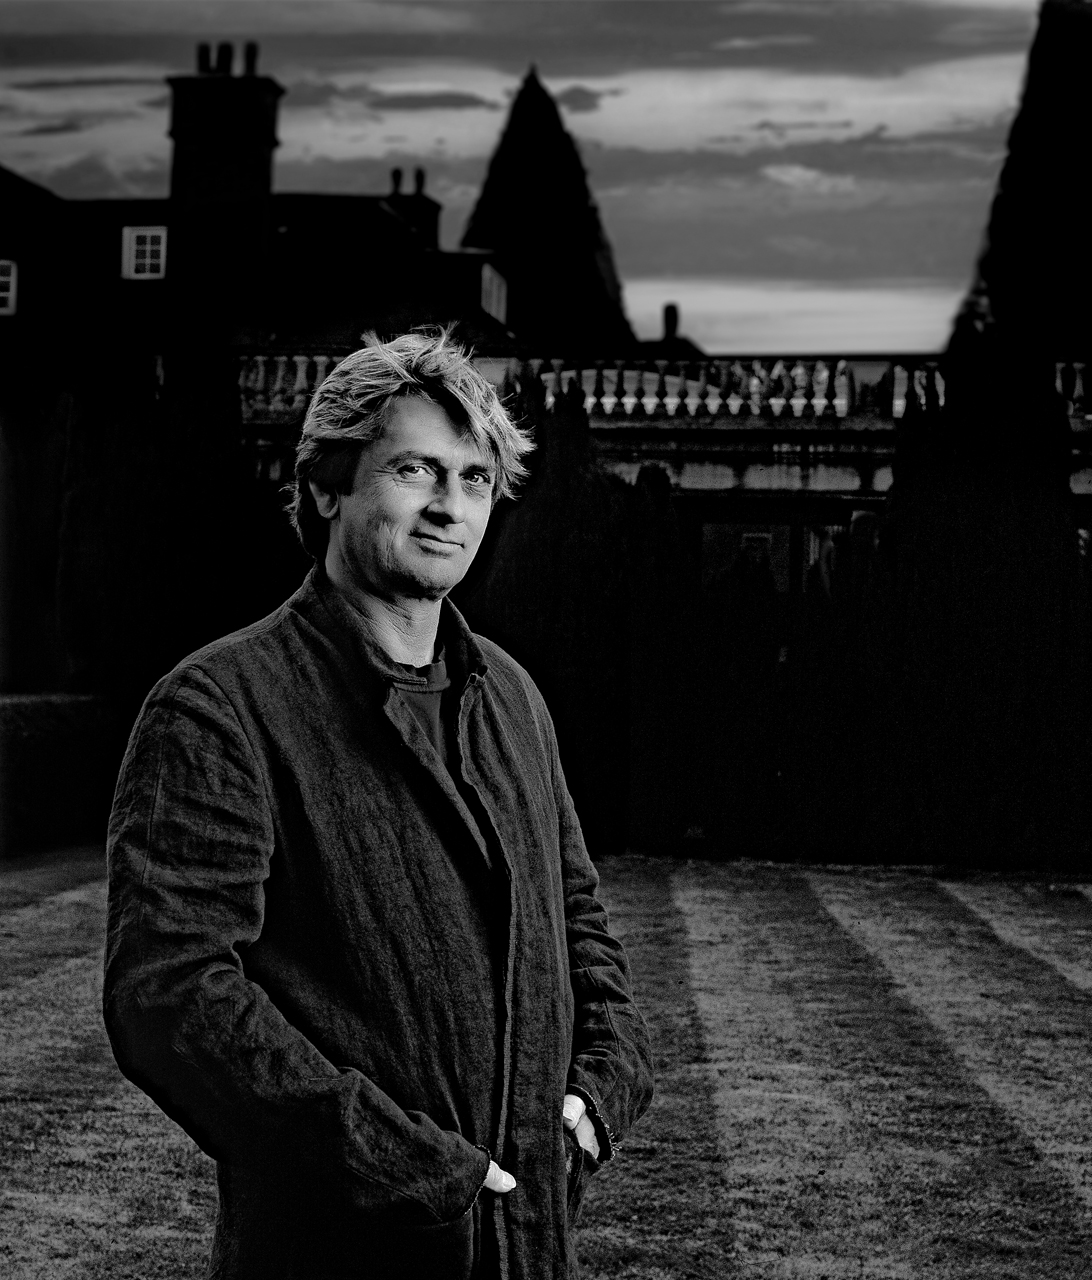 Mike-Oldfield-Manor-House-BW.jpg